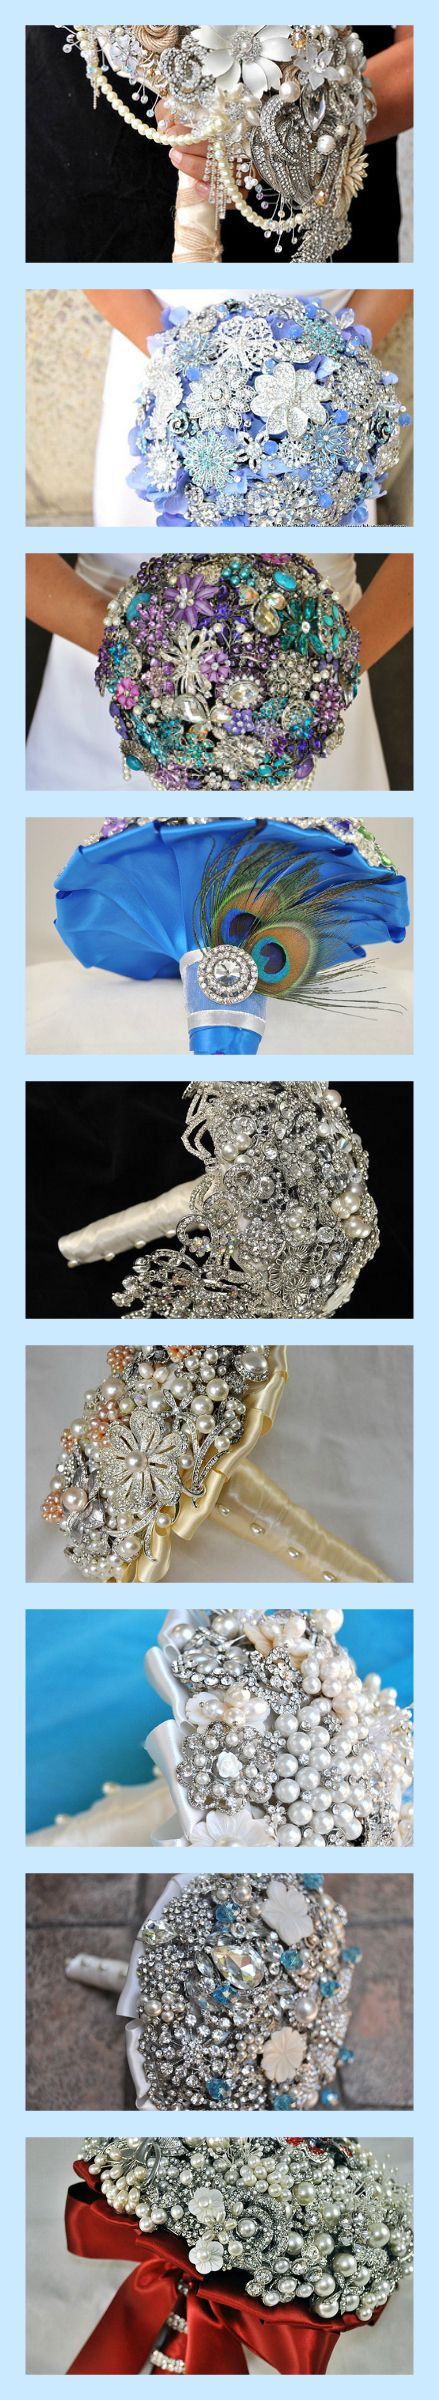 Brooch Bouquets - have friends/family bring broches to shower and make bouquet from the broches!!